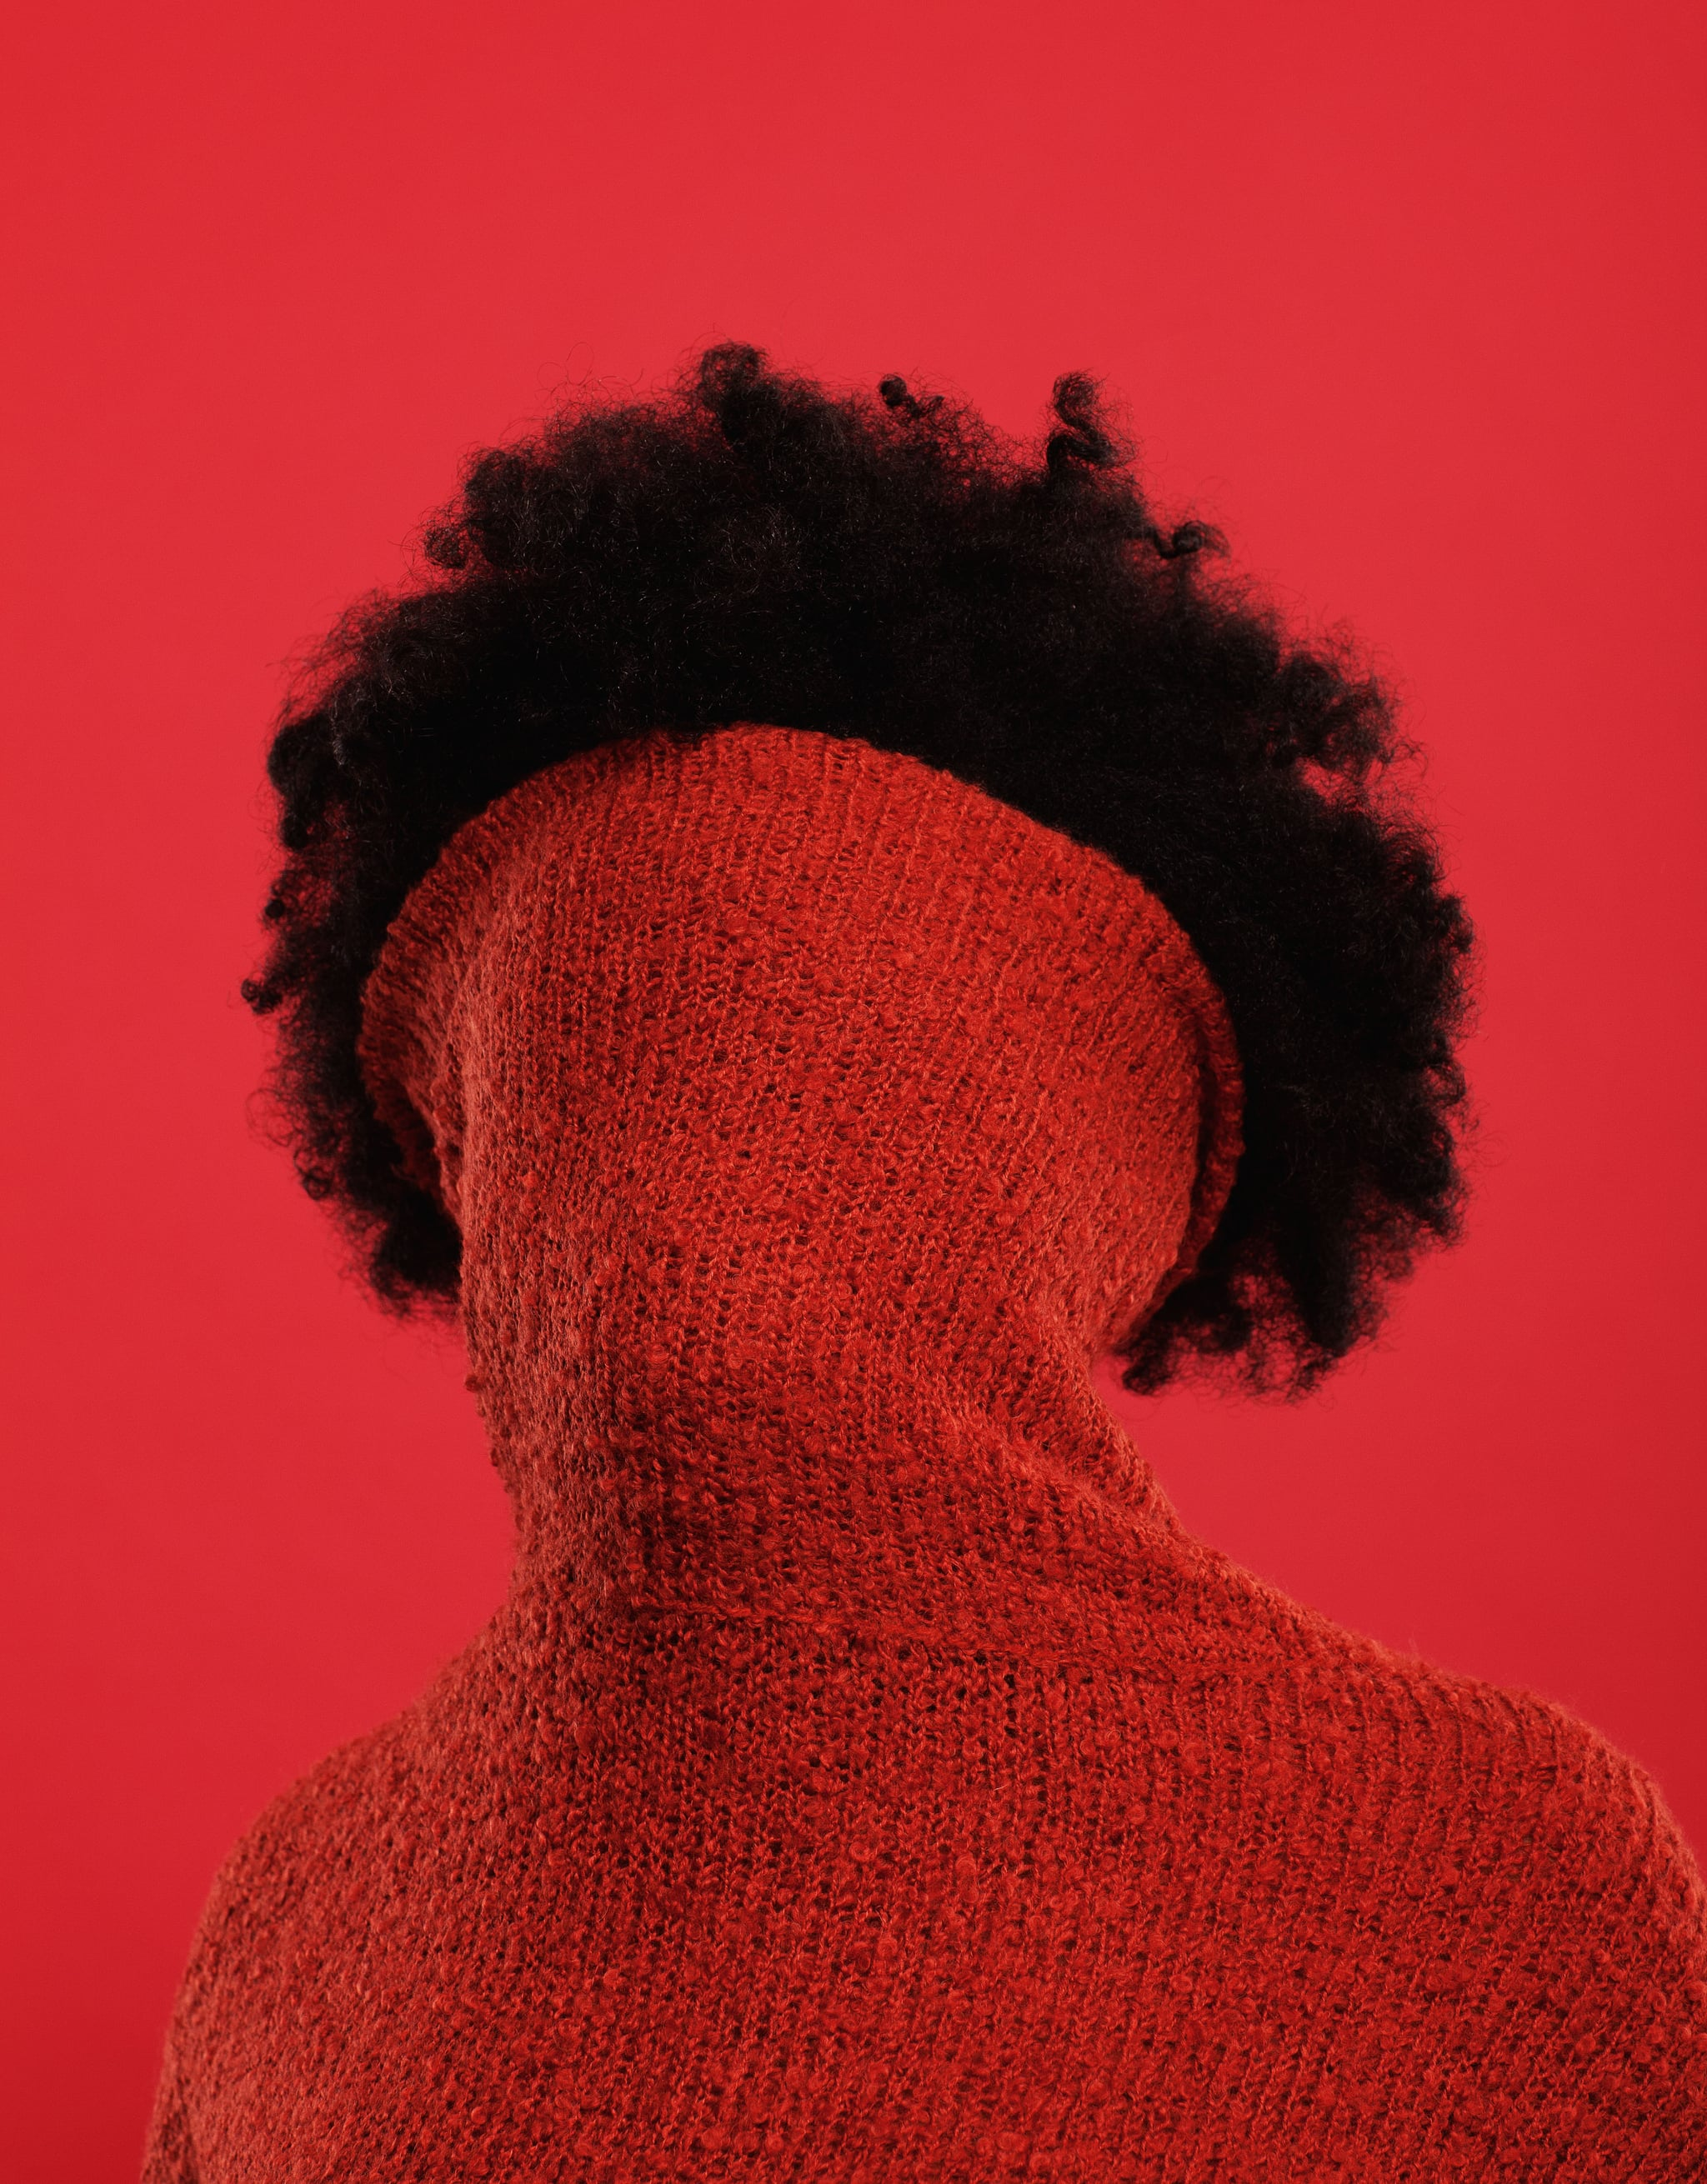 A woman with an afro hair style wearing a red jumper with turtle neck pulled up all the way to cover her face,  shot in front of a red background.